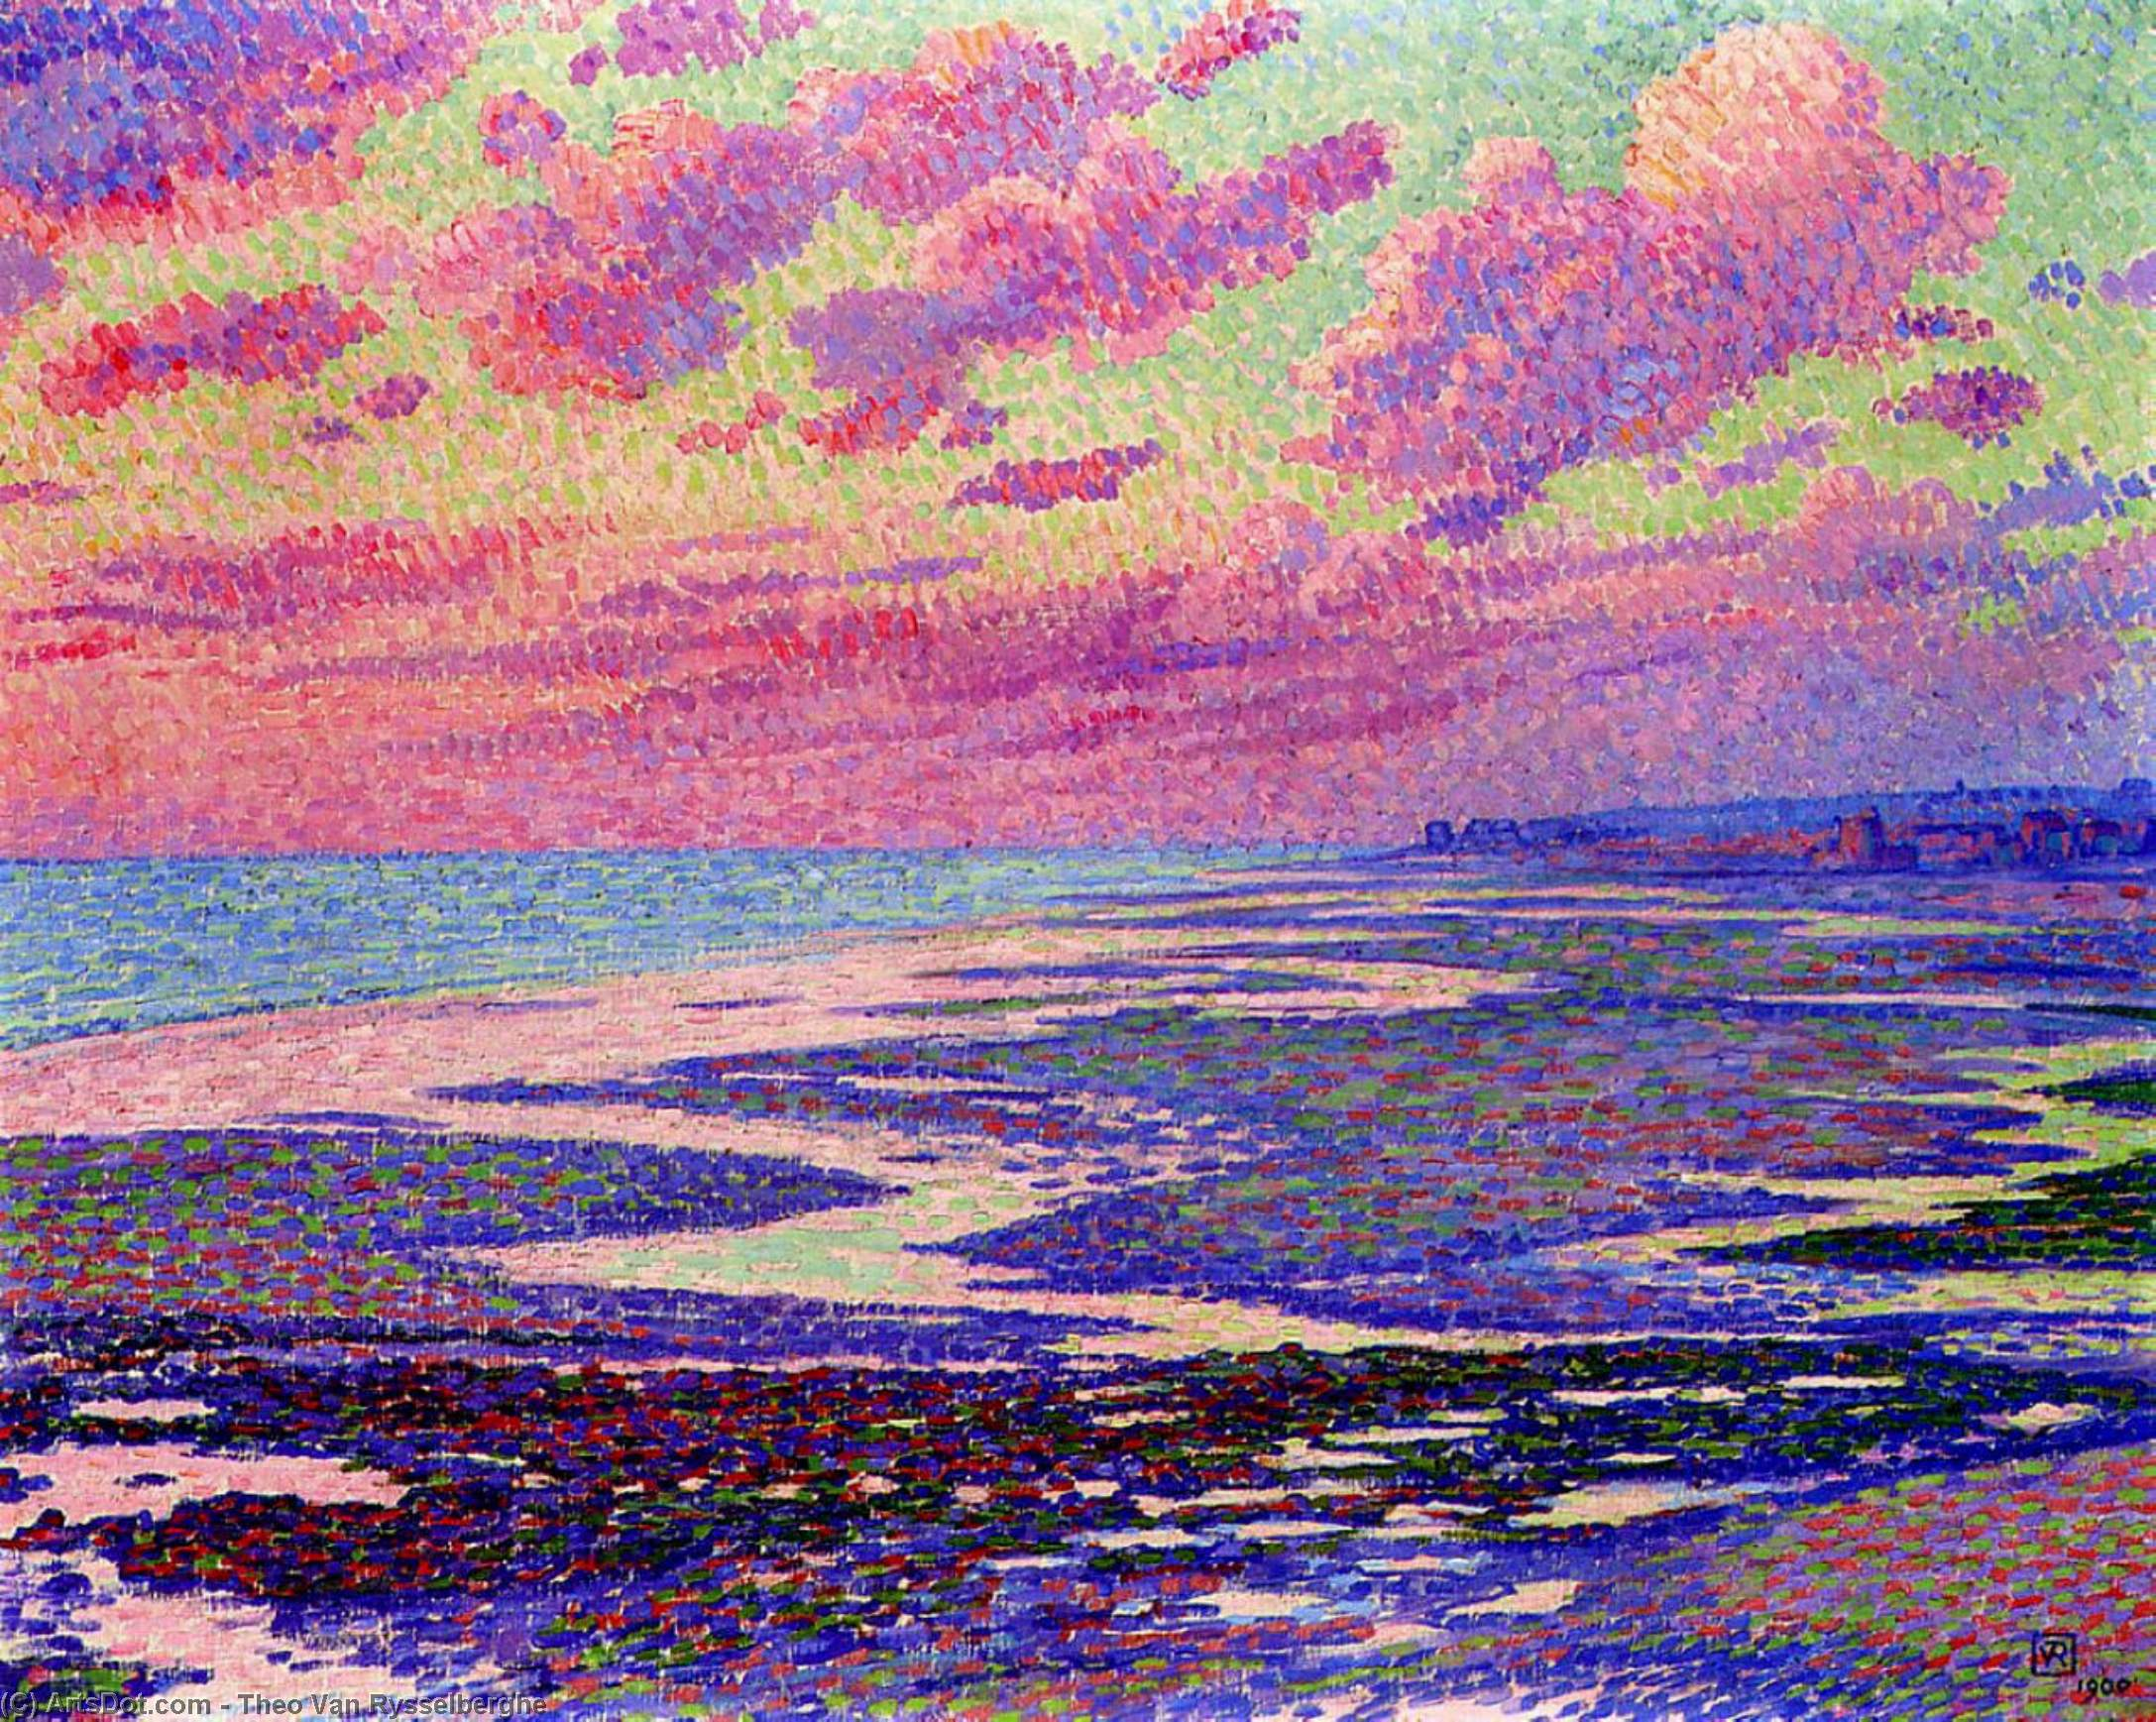 The Beach at Ambleteuse at Low Tide, Oil On Canvas by Theo Van Rysselberghe (1862-1926, Belgium)